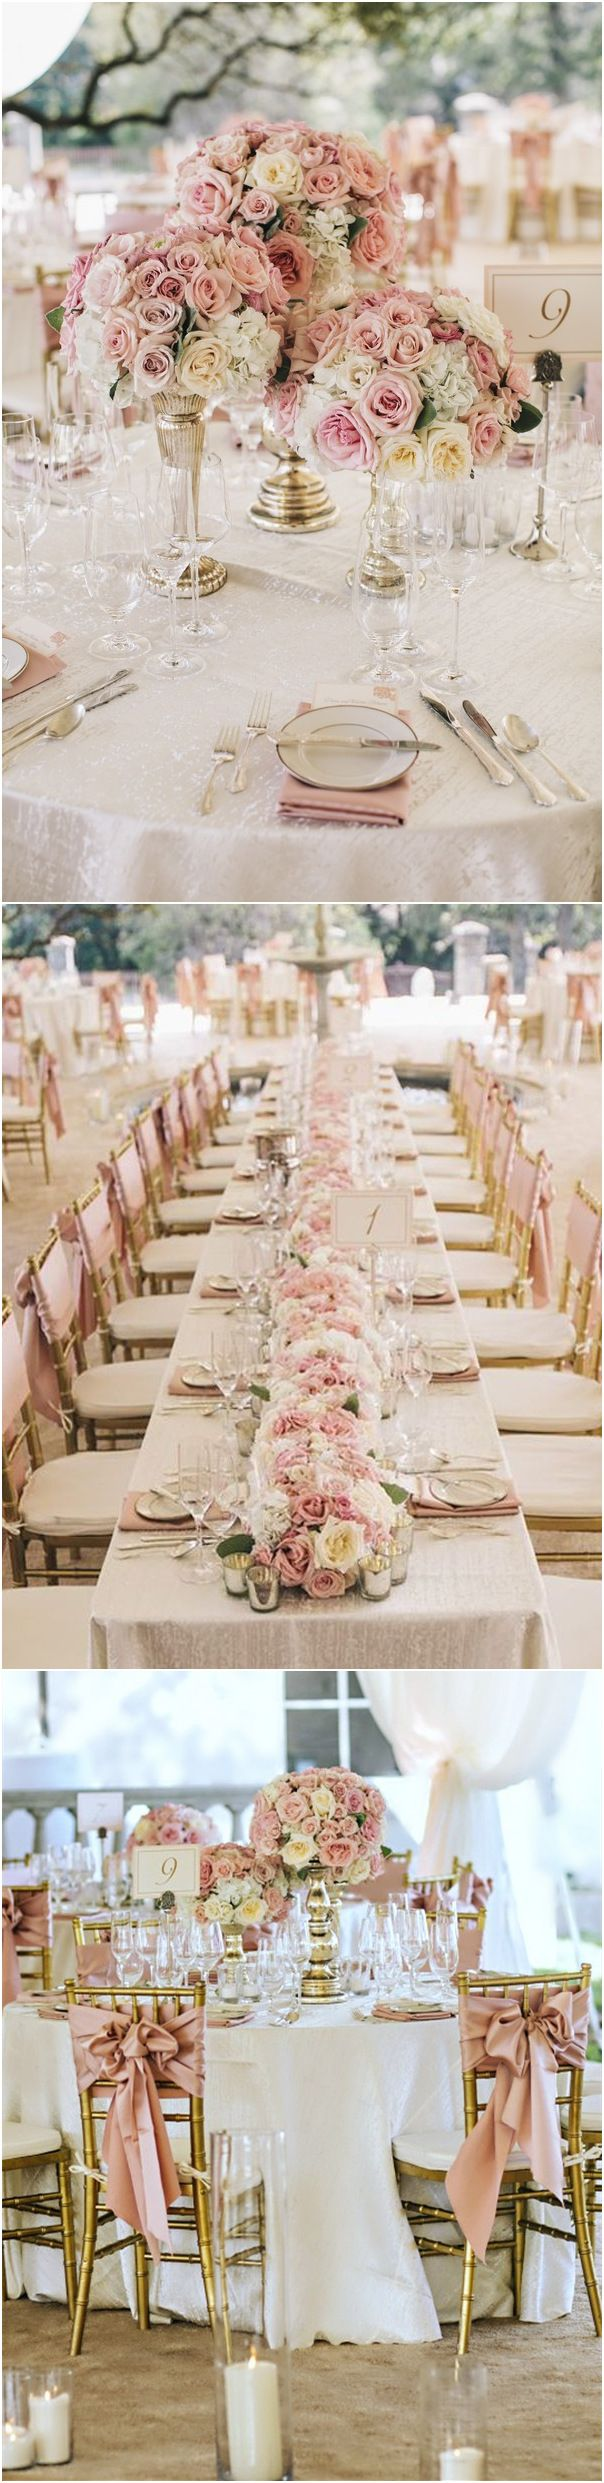 Trending dusty rose wedding color ideas for page of